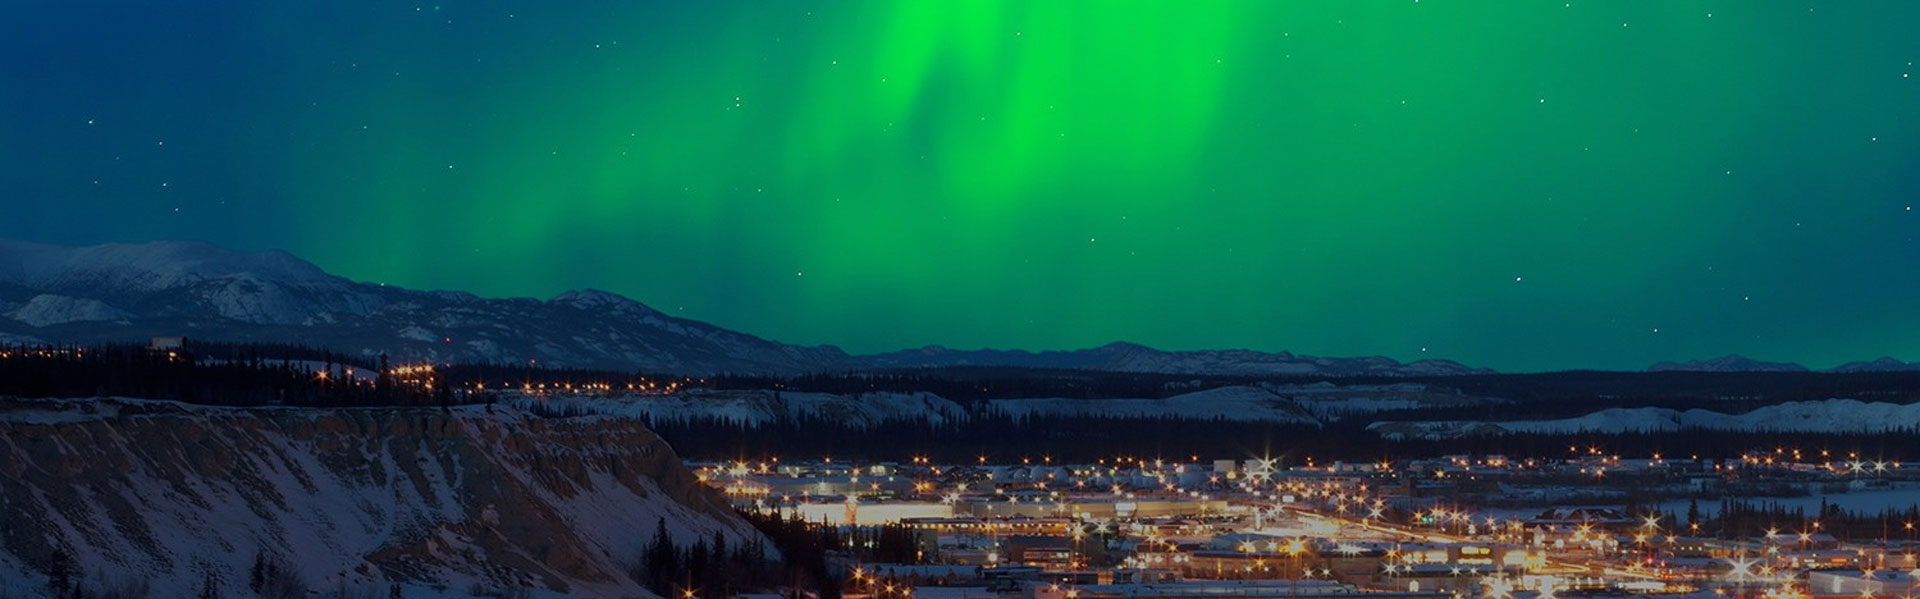 Whitehorse Vacation Packages | Yukon Canada Northern Lights